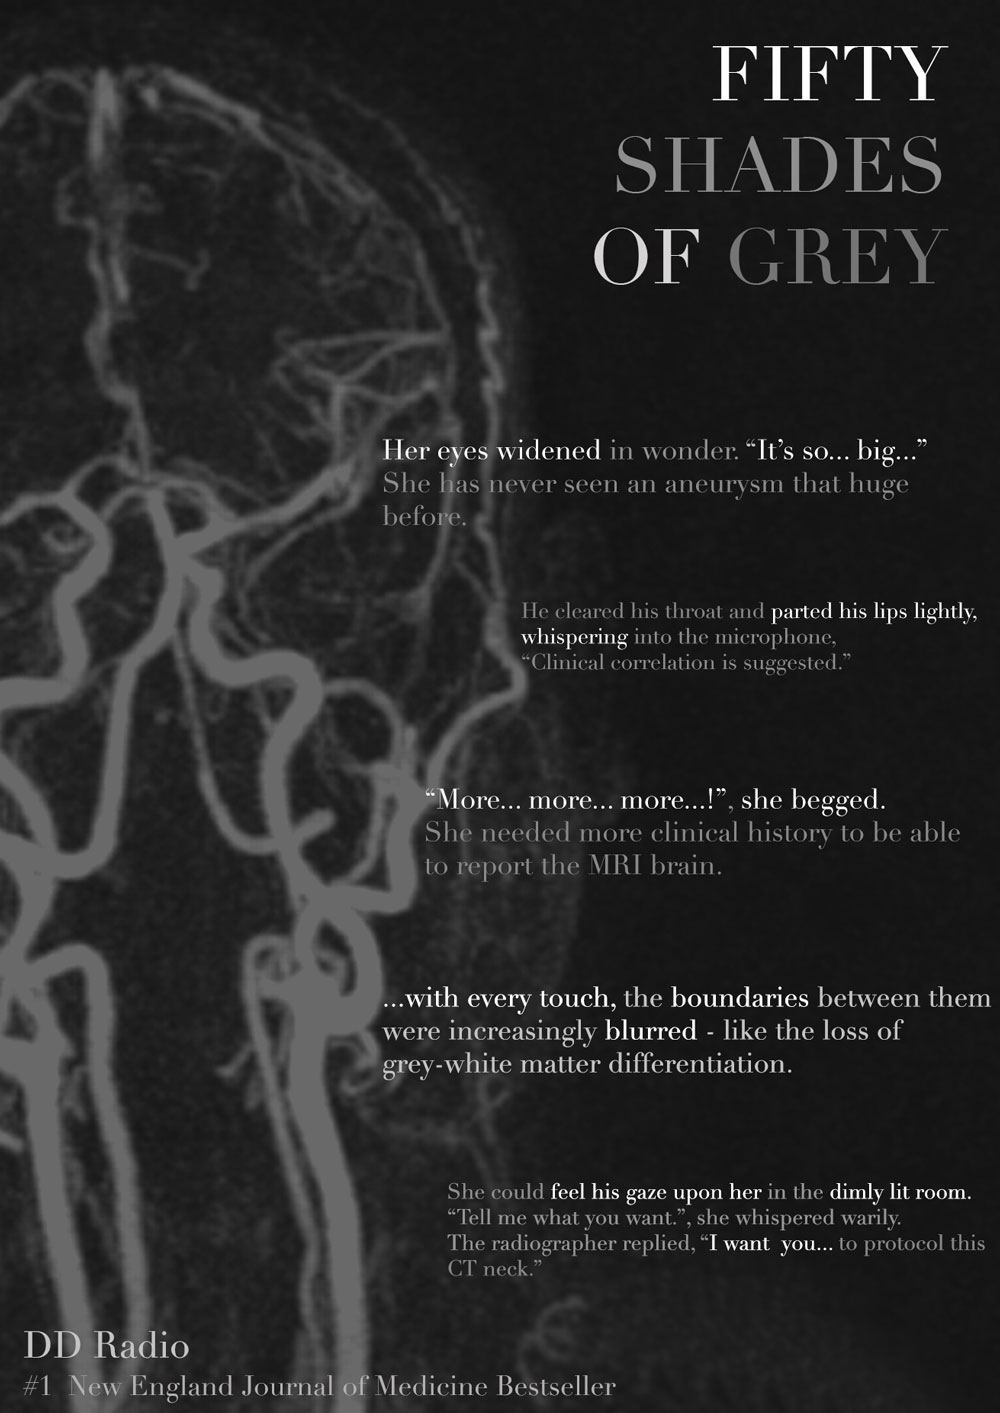 Fifty shades of grey radiology edition gomerblog for When does fifty shades of grey